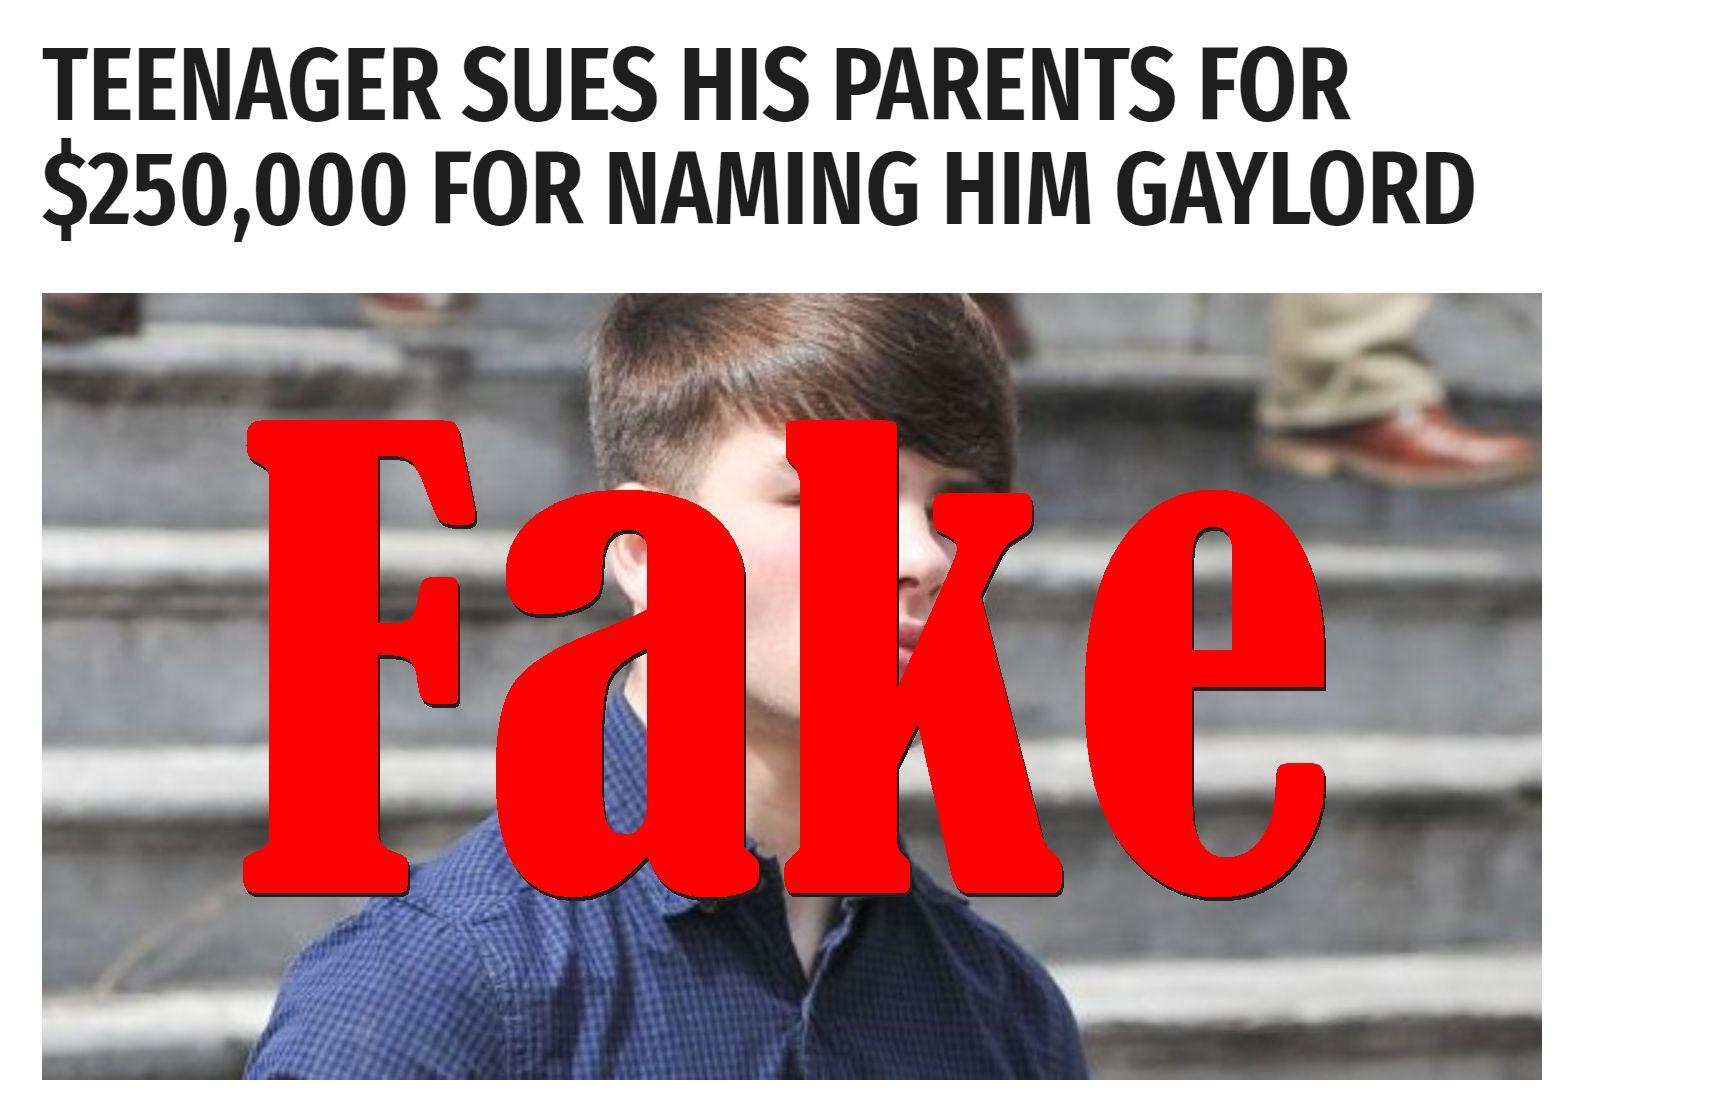 Fake News: Teenager Did NOT Sue His Parents For $250,000 For Naming Him Gaylord